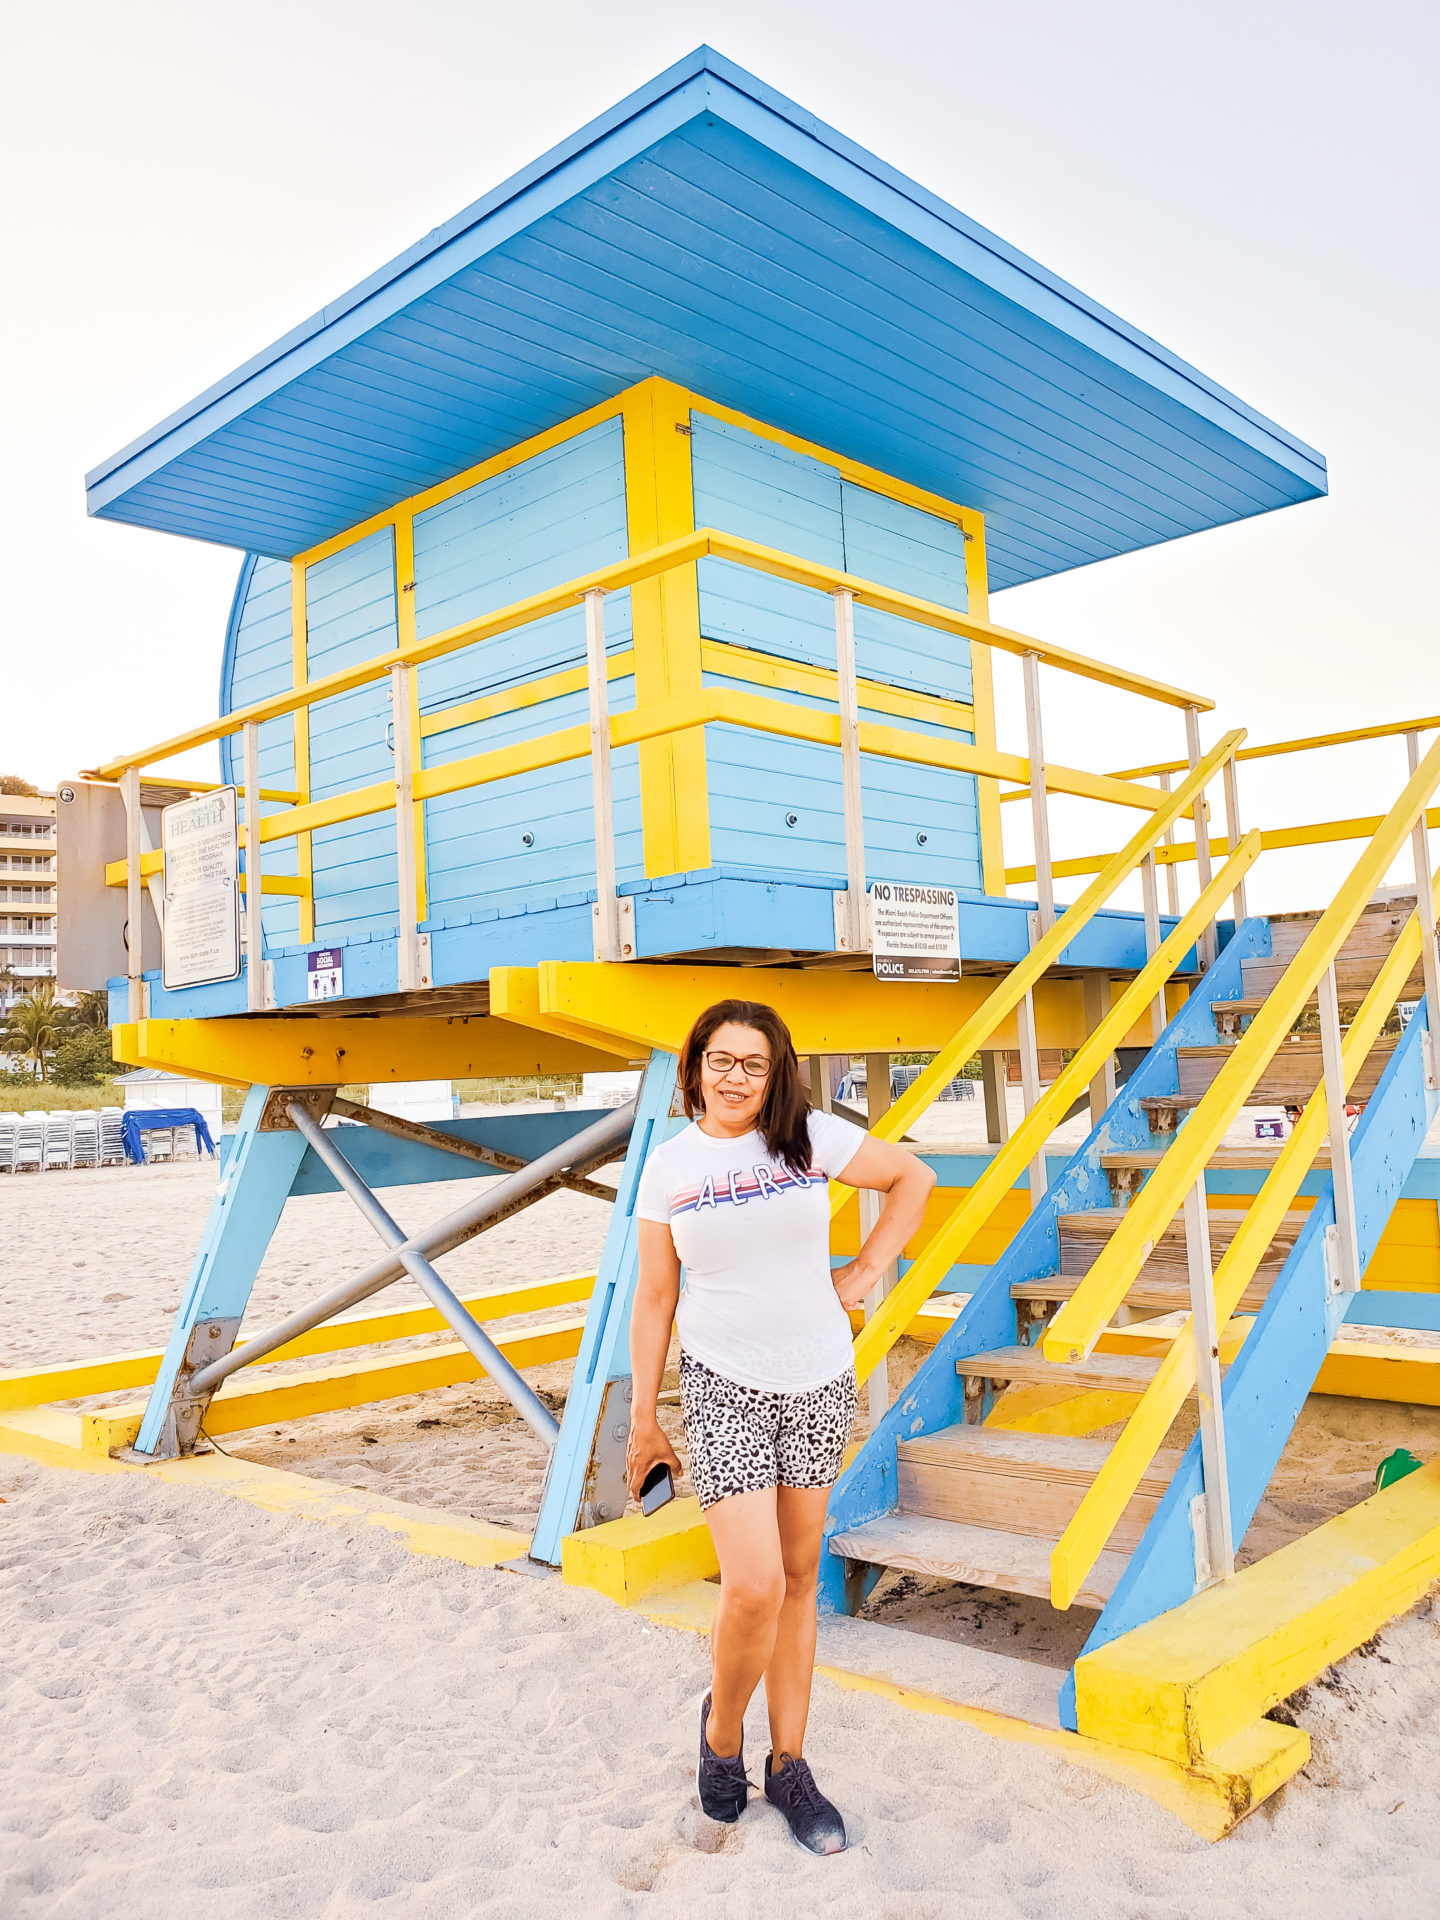 My mom Posing in front of a Lifeguard Tower.